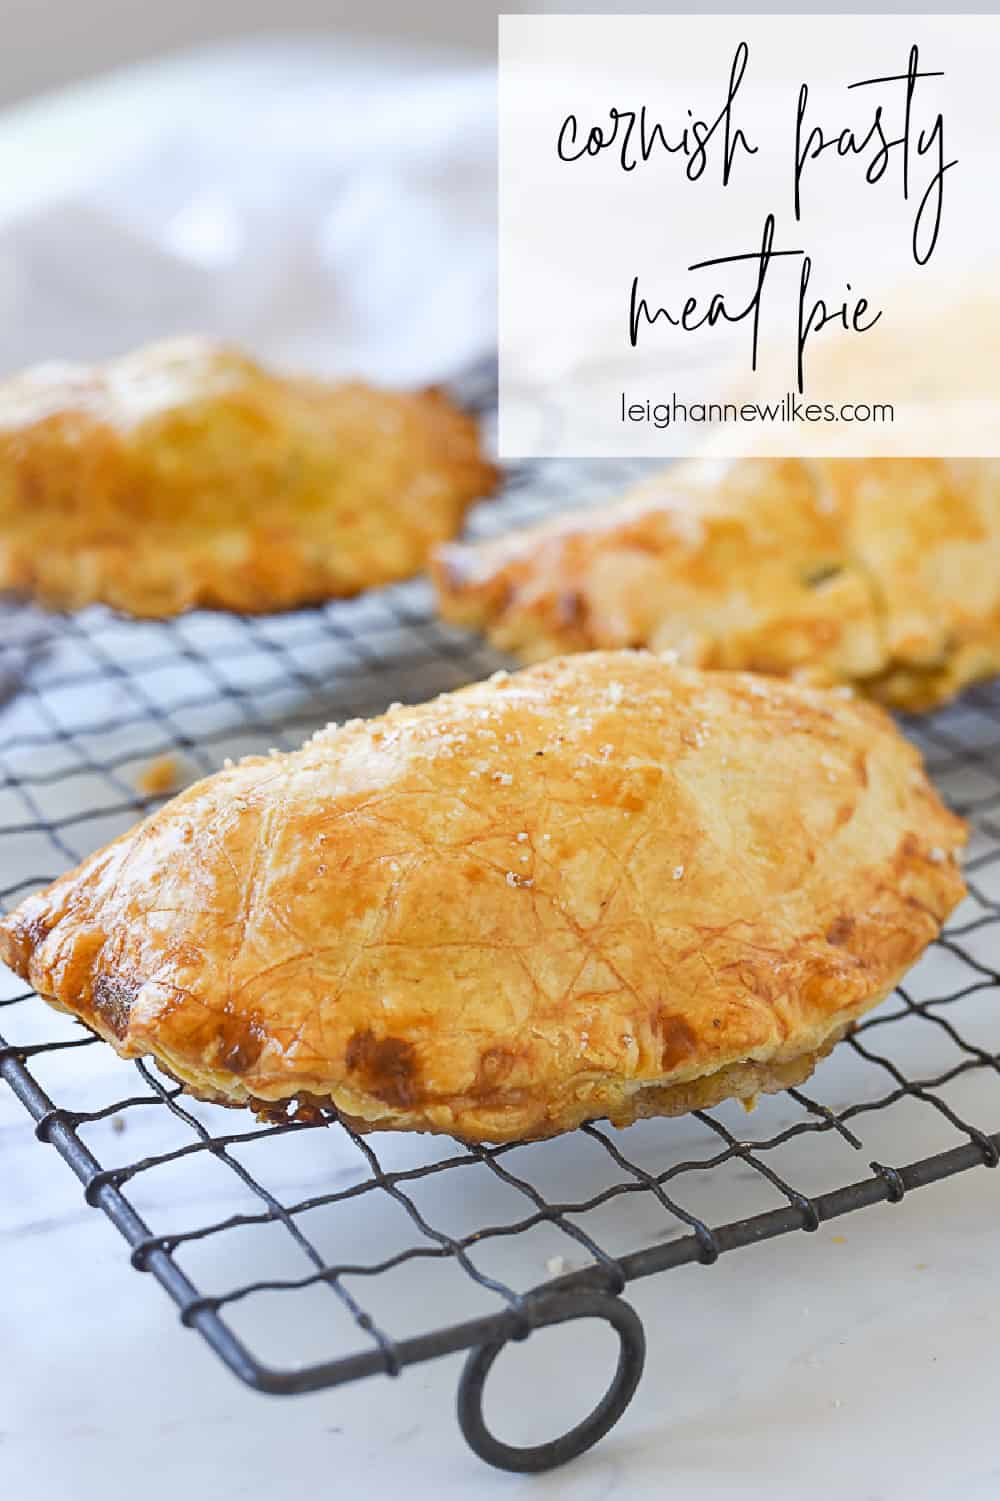 cornish pasty on a cooling rack